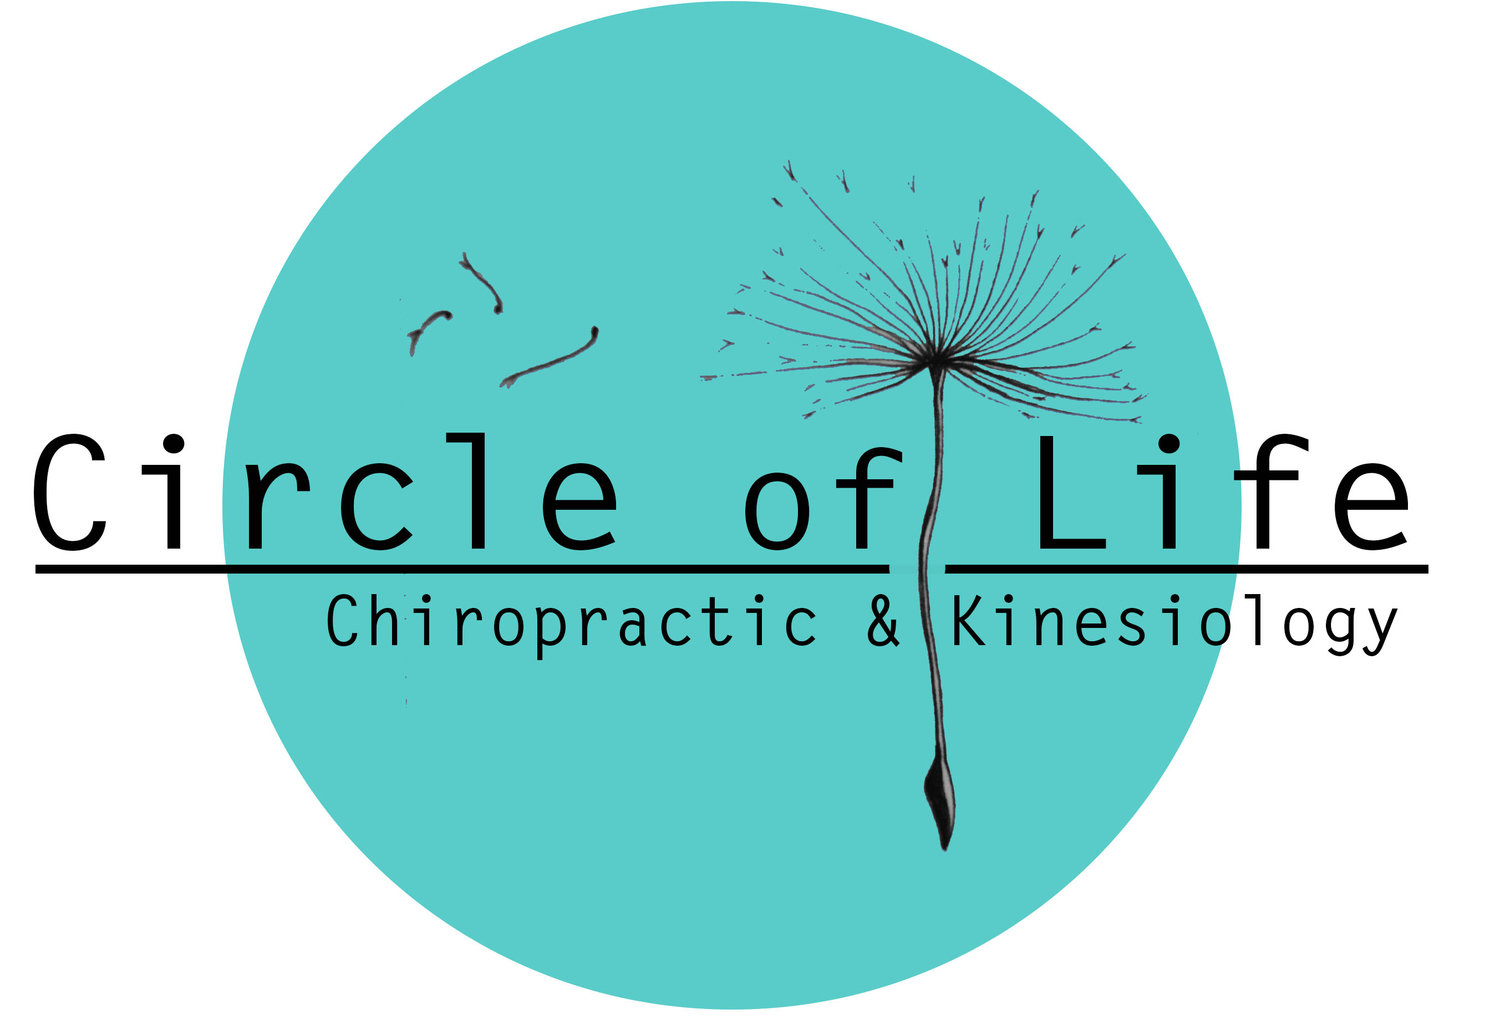 Circle Of Life Chiropractic & Kinesiology